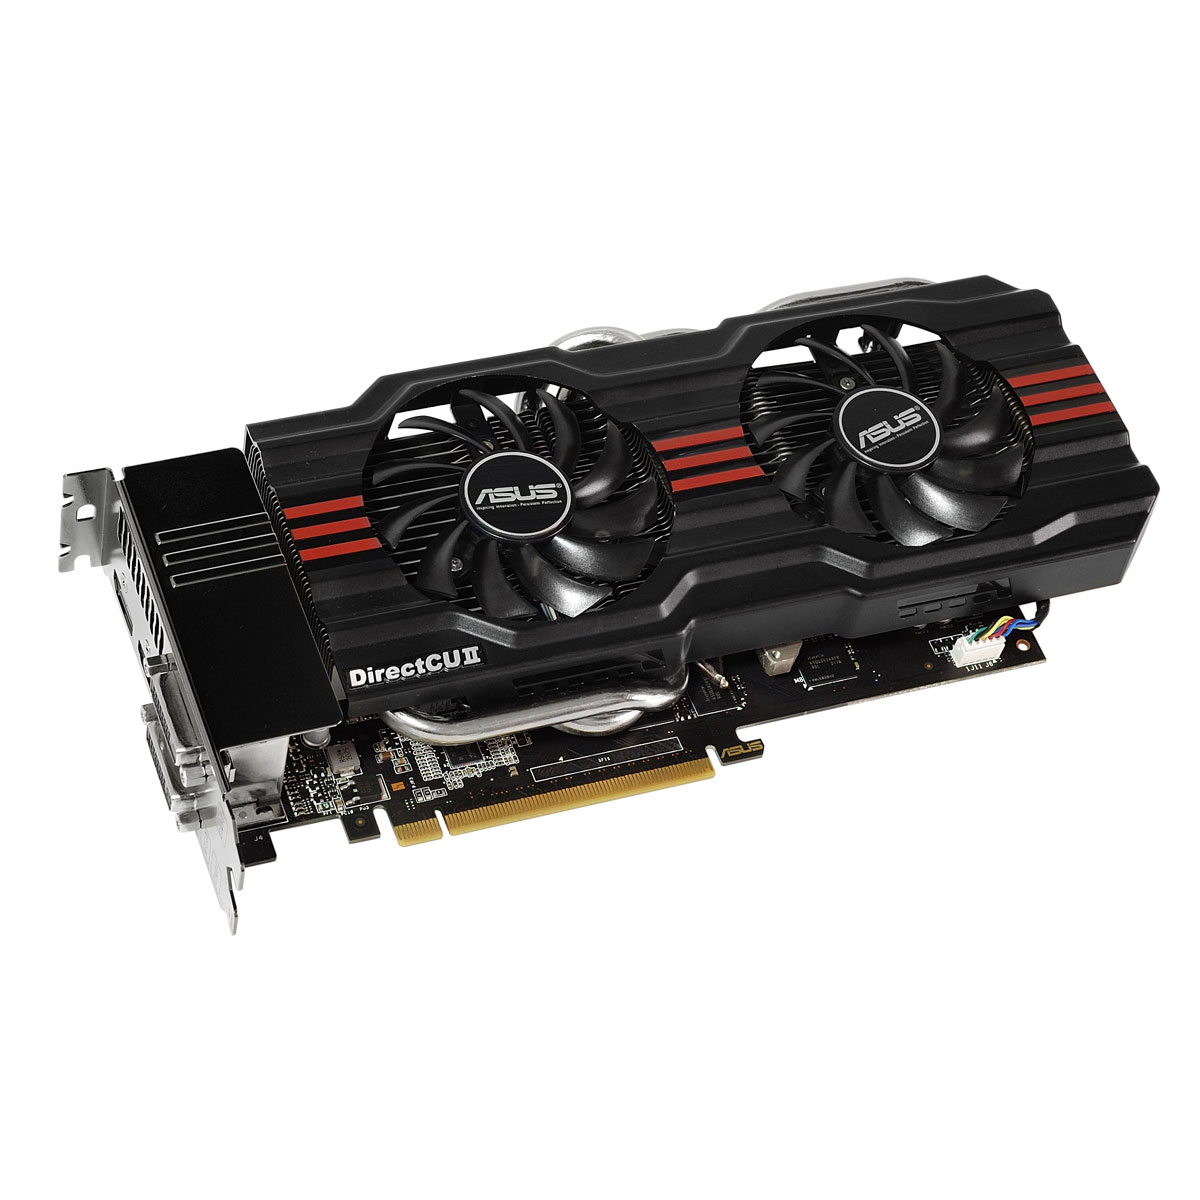 Carte graphique ASUS GTX660 TI-DC2OG-2GD5 2 GB 2048 Mo Dual DVI/HDMI/DisplayPort - PCI Express (NVIDIA GeForce avec CUDA GTX 660 Ti) + Borderlands 2